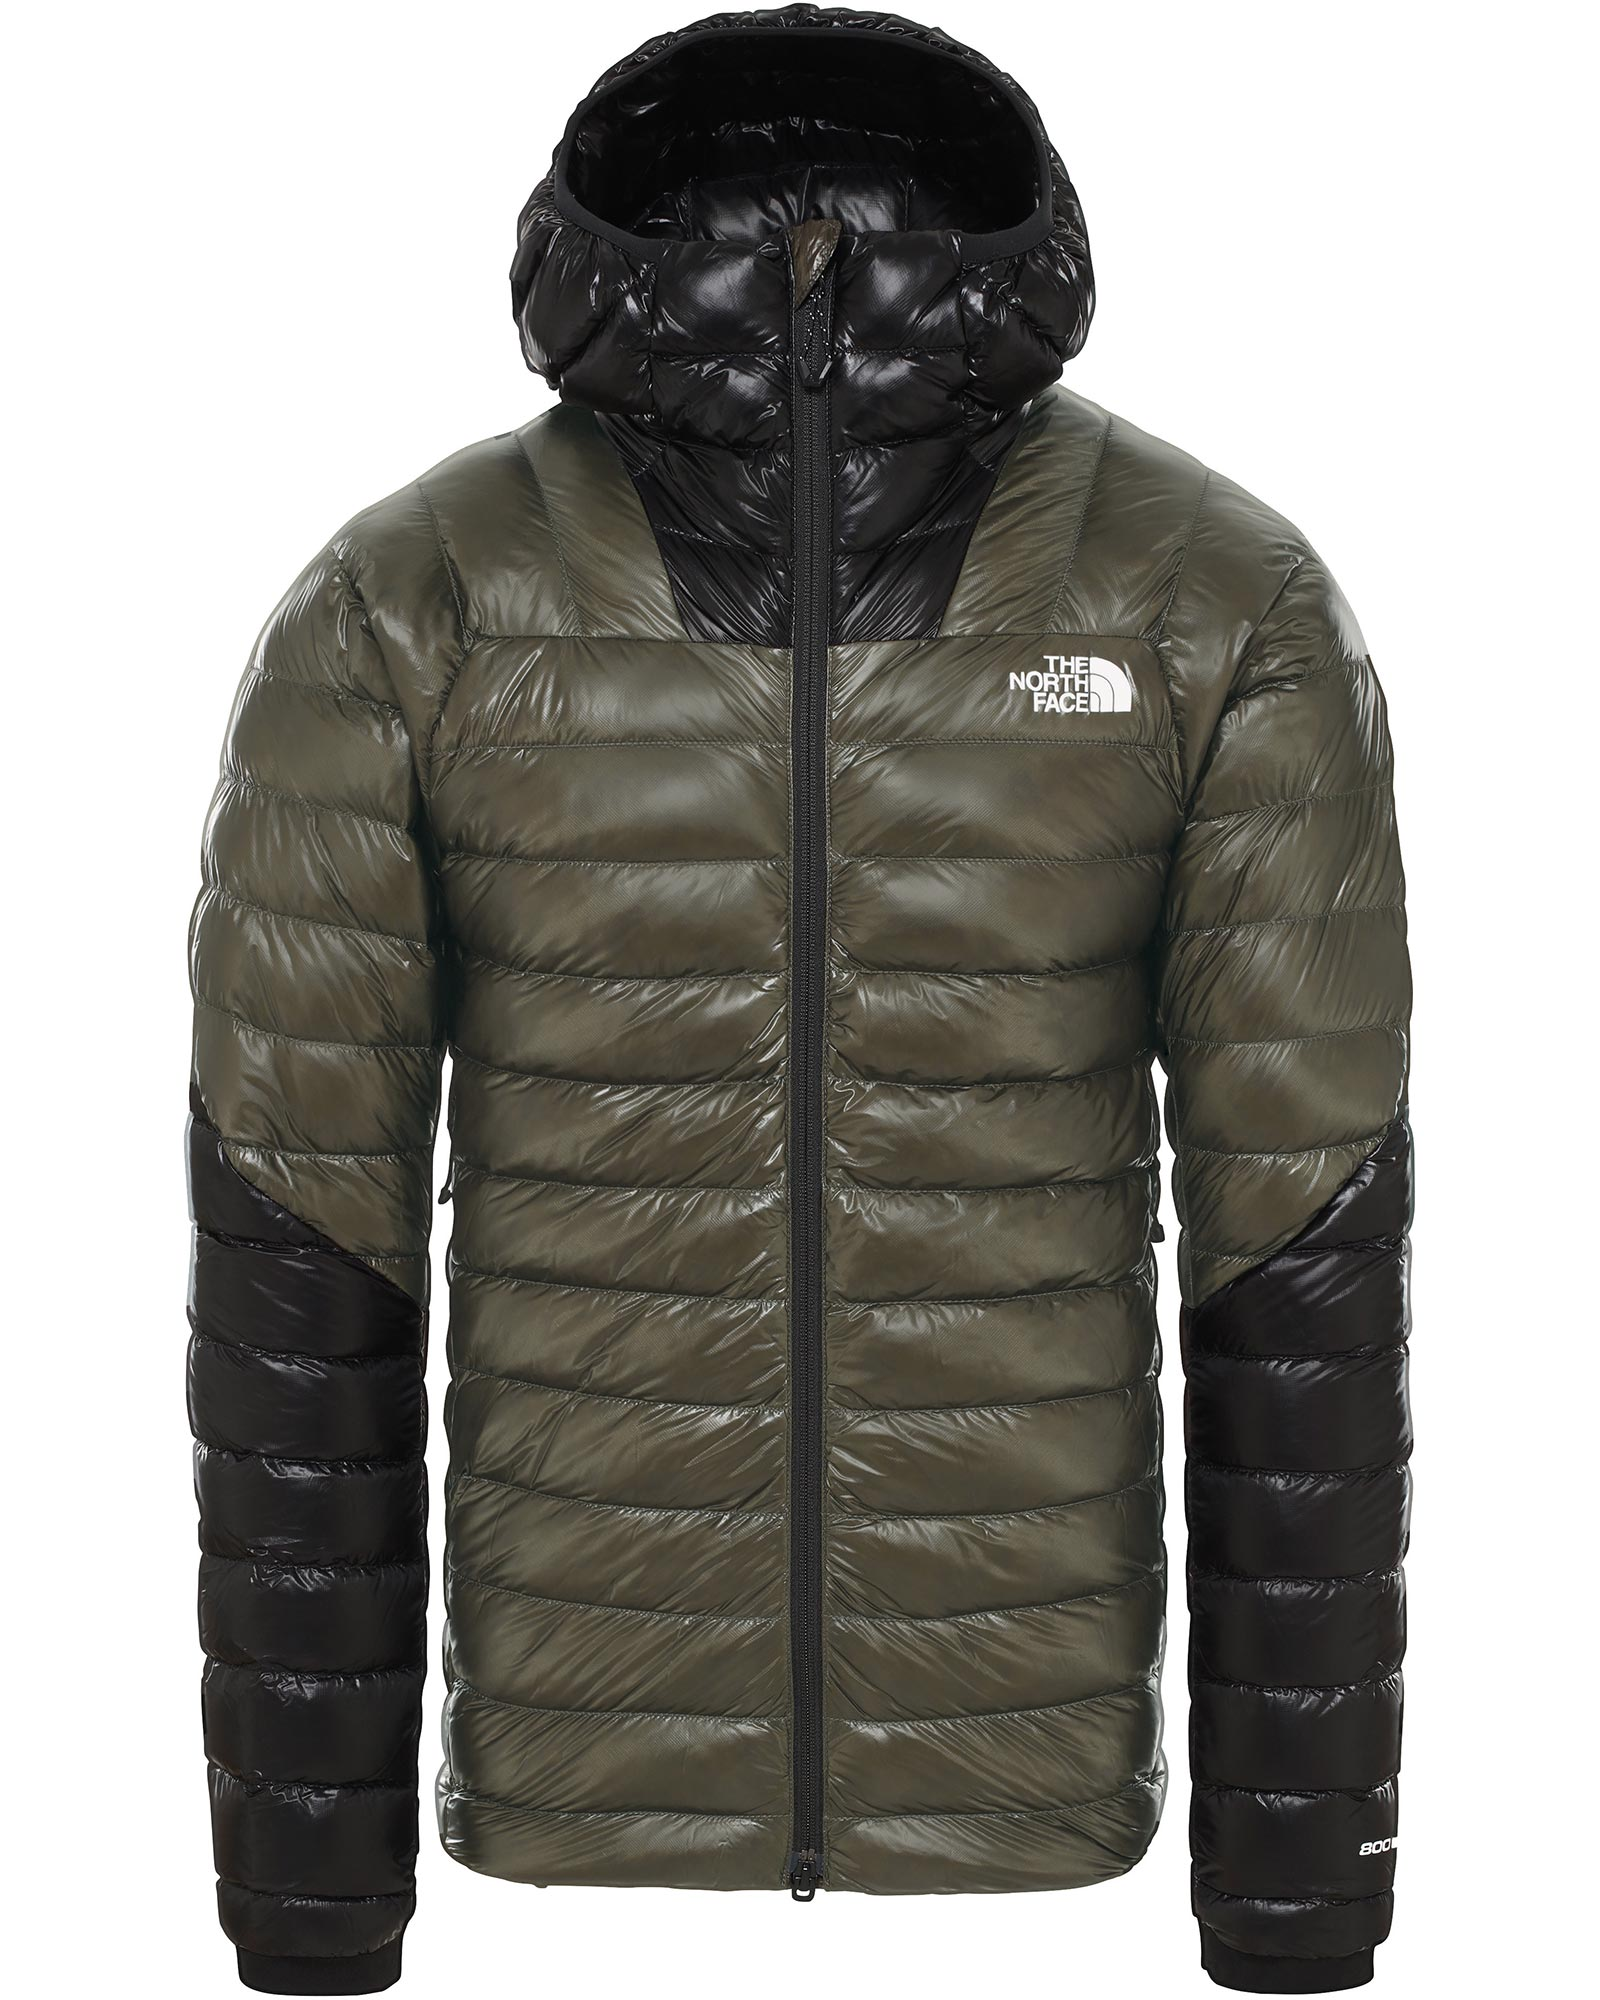 The North Face Men's Summit Series L3 Down Hoodie 0